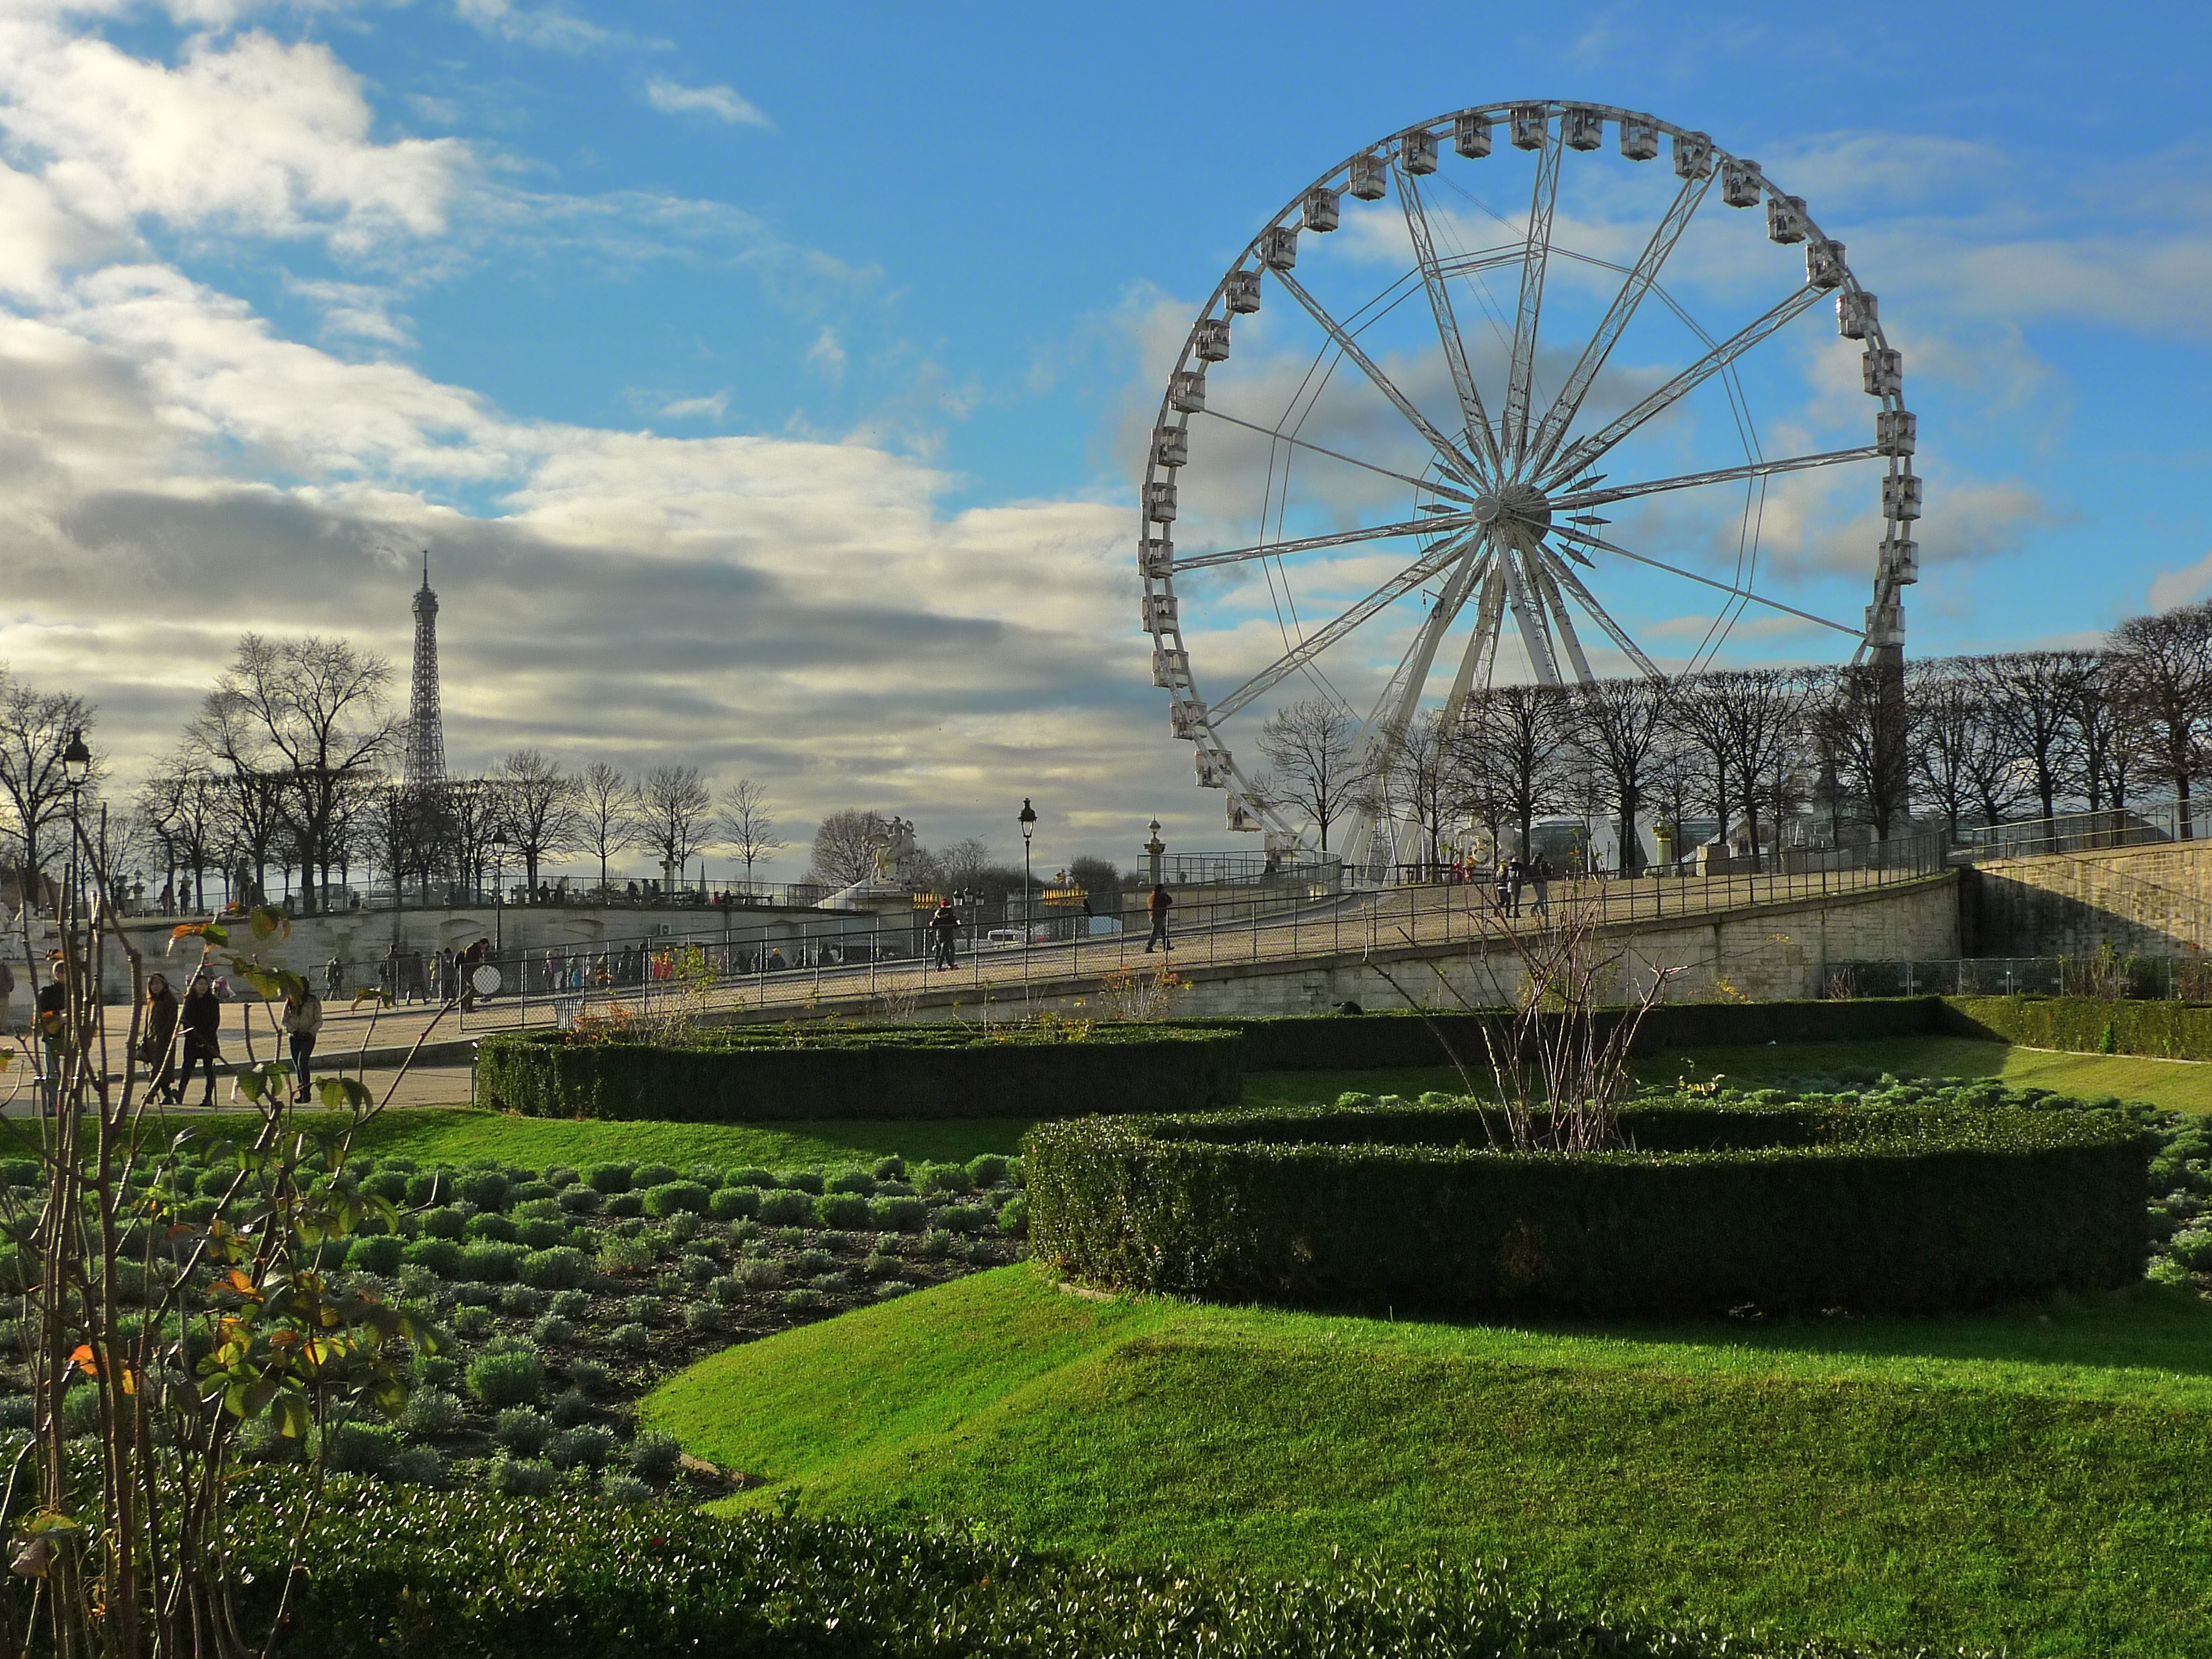 Jardin des tuileries soundlandscapes 39 blog for Tuilerie jardin